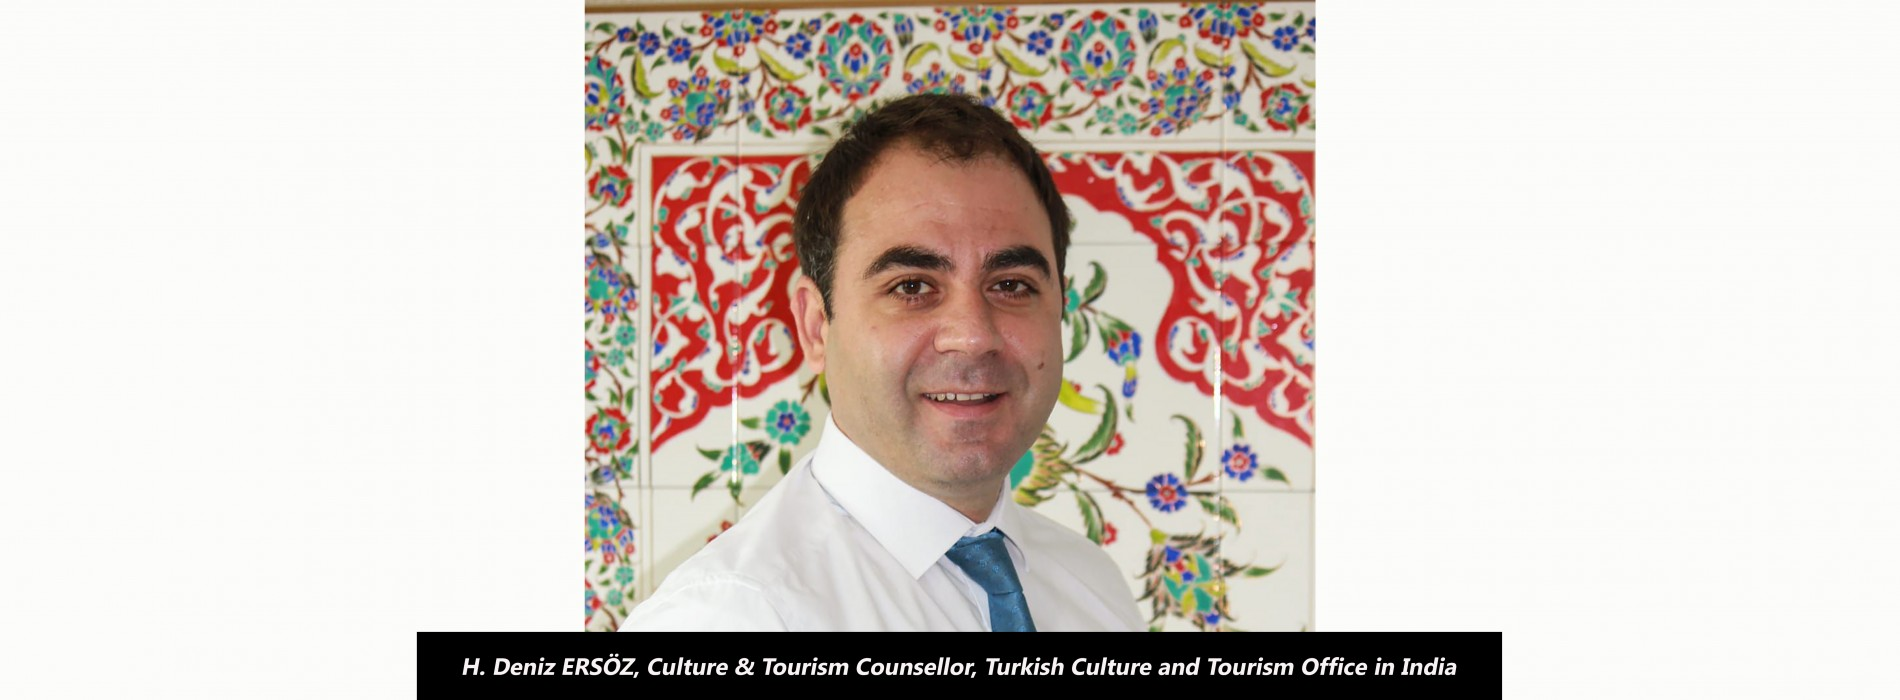 Linkin reps appointed as pr media representative for turkish culture and tourism office in - Turkish culture and tourism office ...